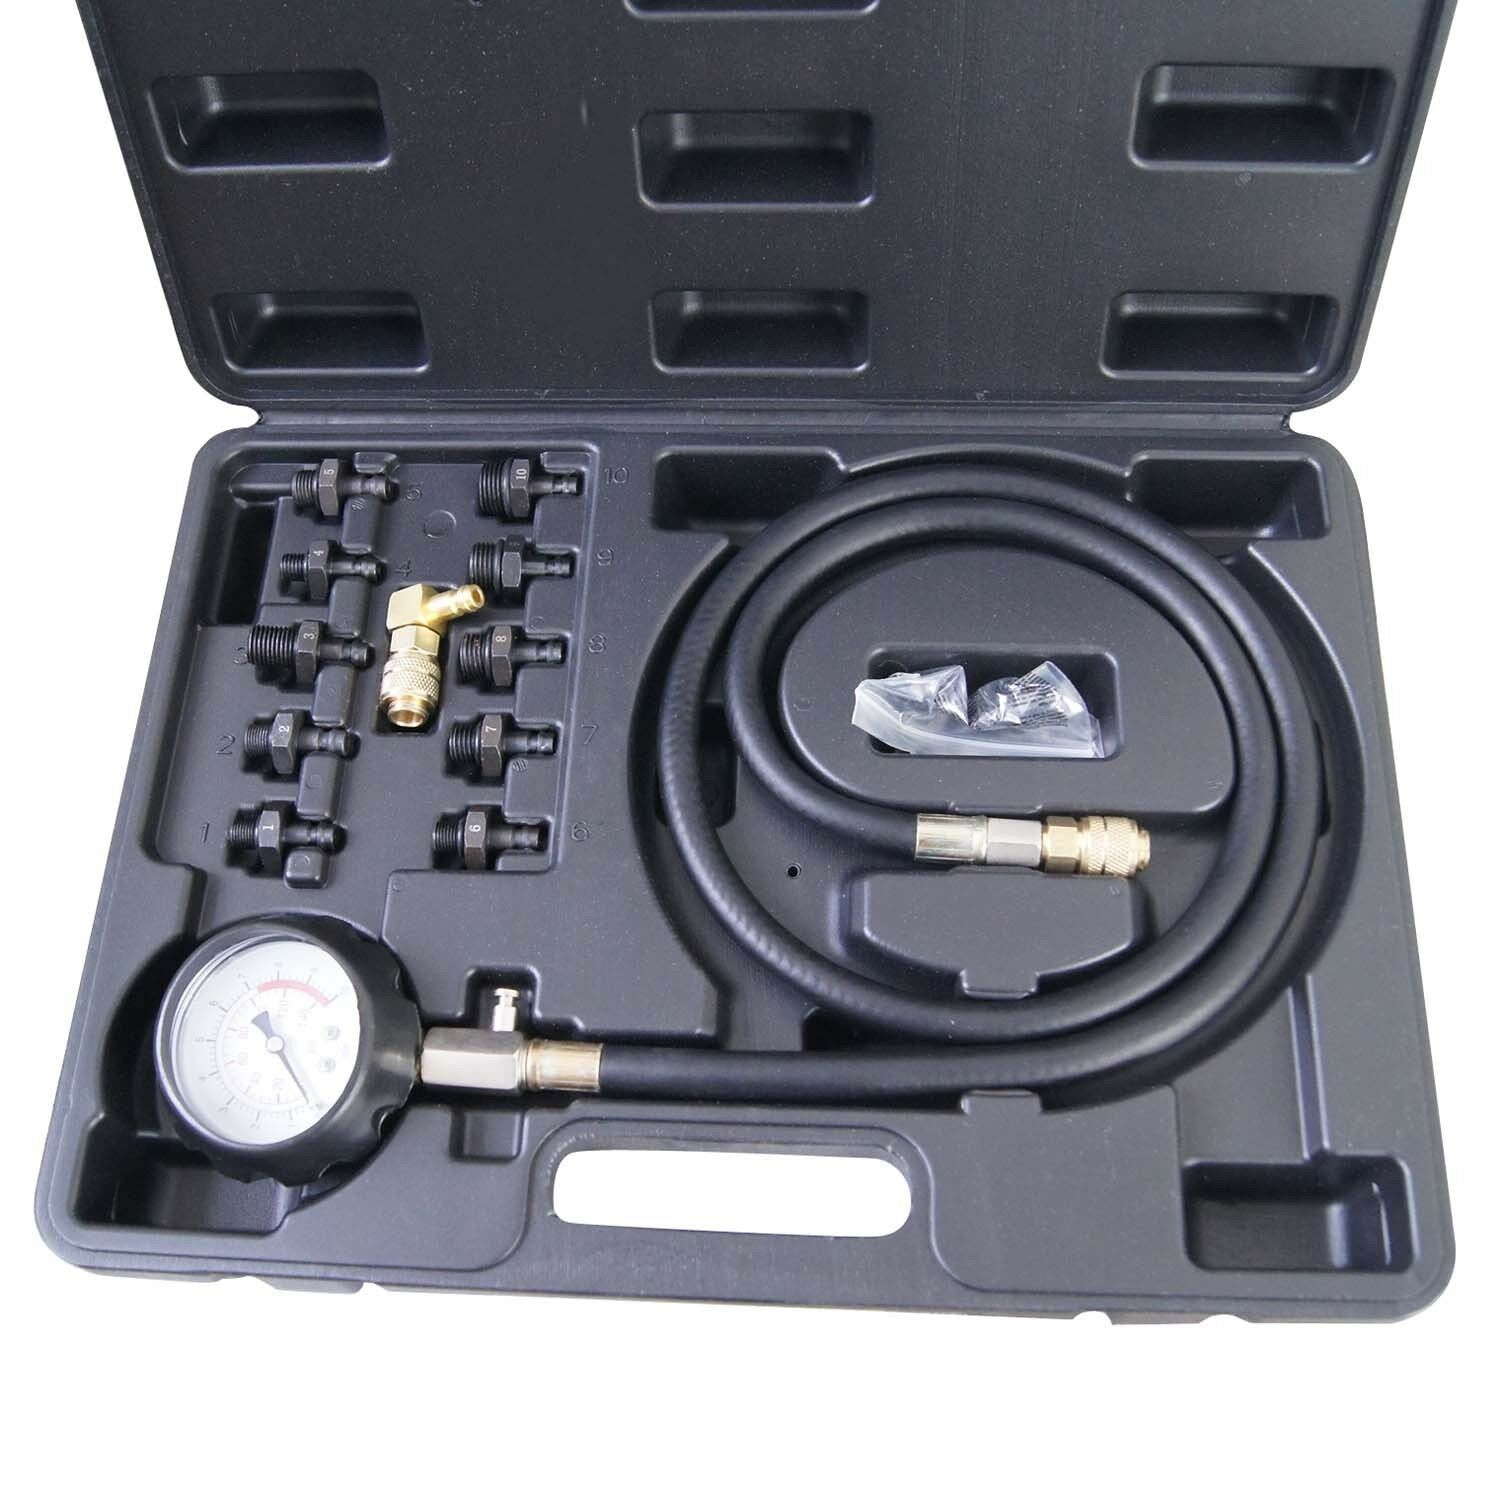 449851 engine oil pressure test tester kit set tool low oil warning picclick uk. Black Bedroom Furniture Sets. Home Design Ideas